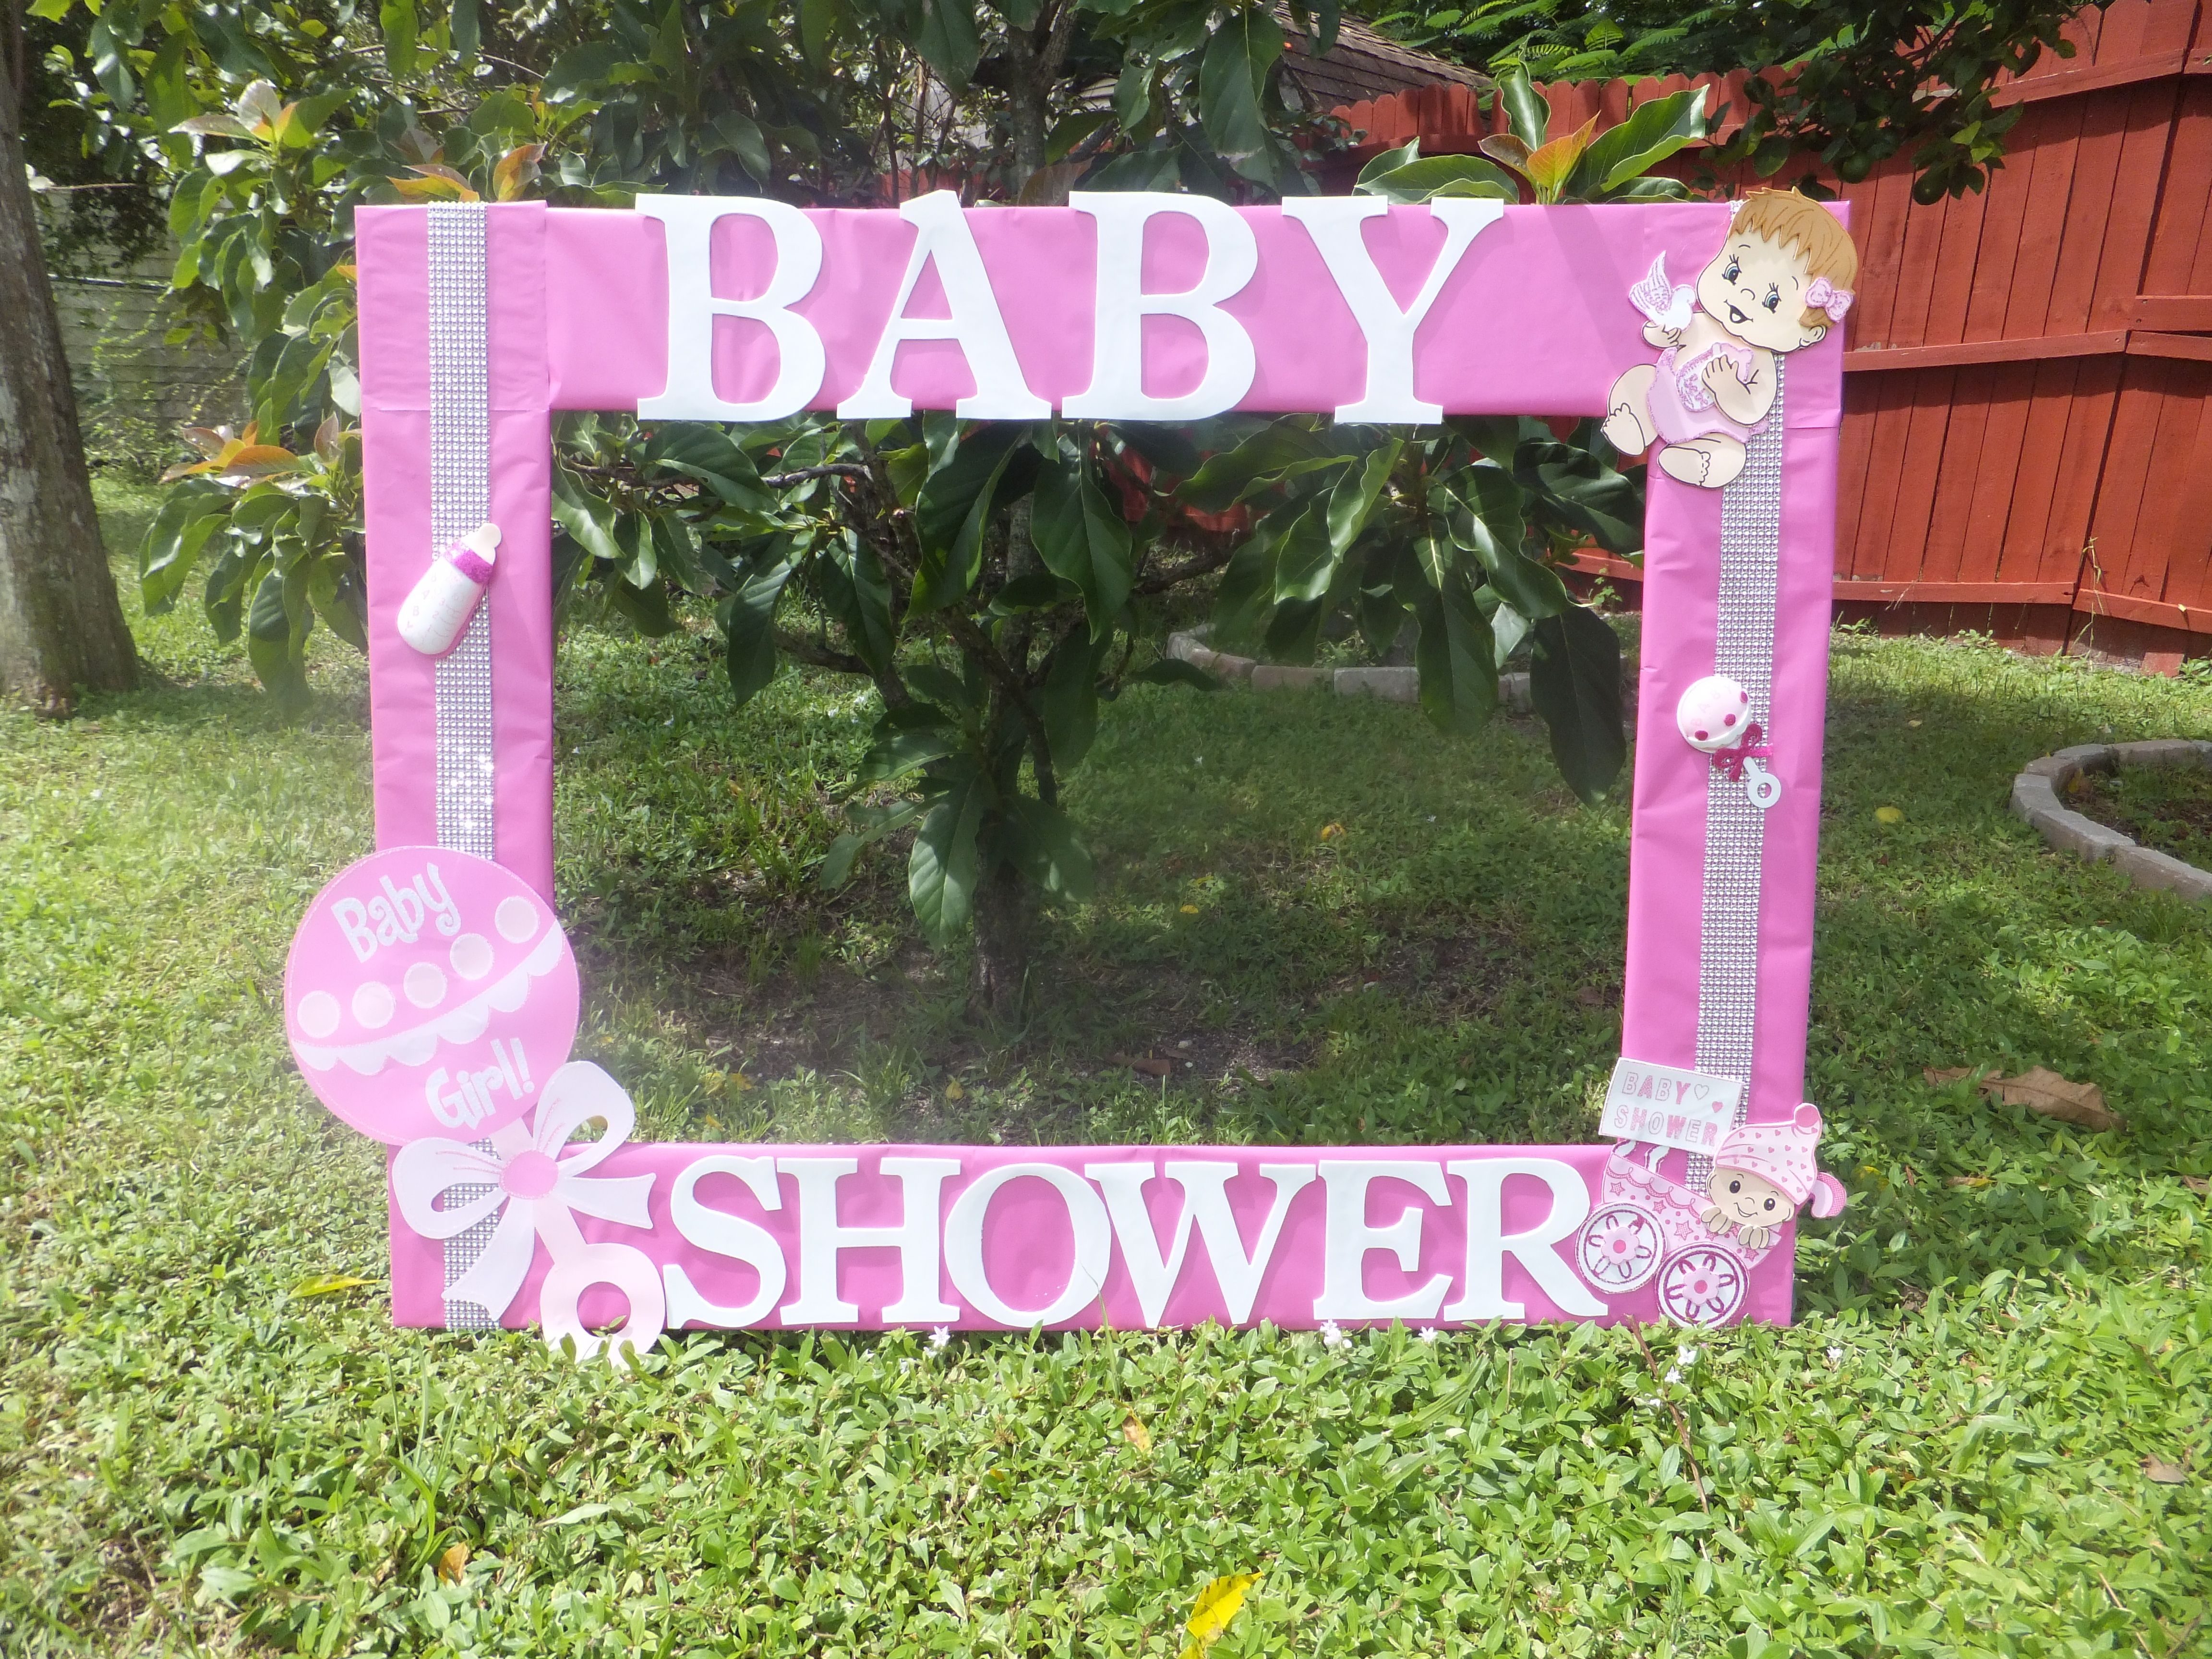 Baby Shower For Girl Photo Frame Cuadro Tematico Made By Thelma Villa